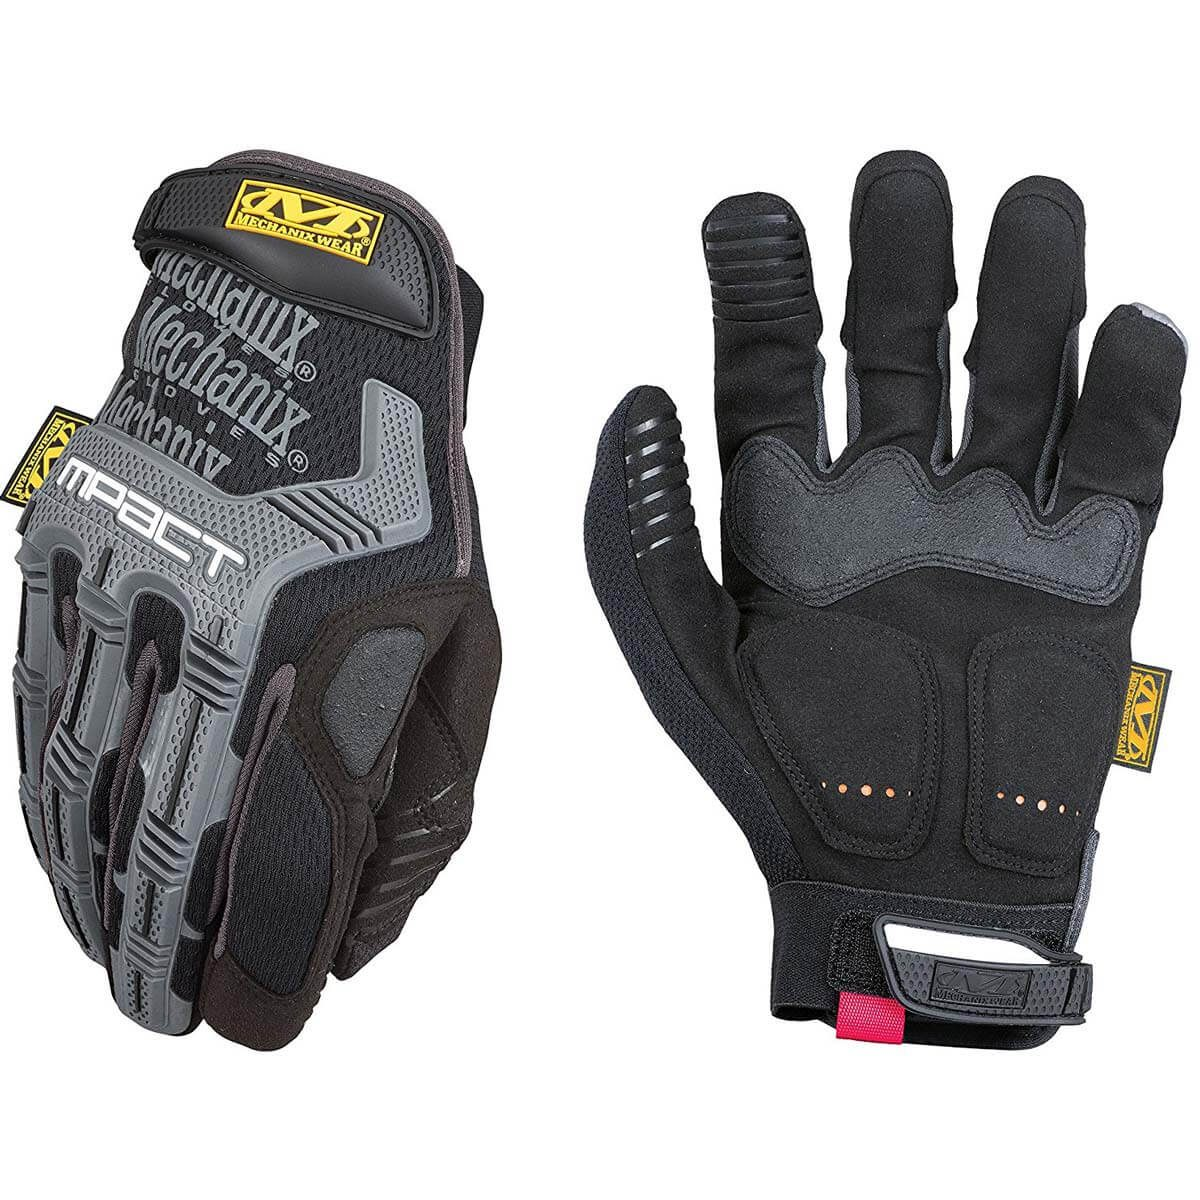 Mechanix Wear M – Pact Gloves